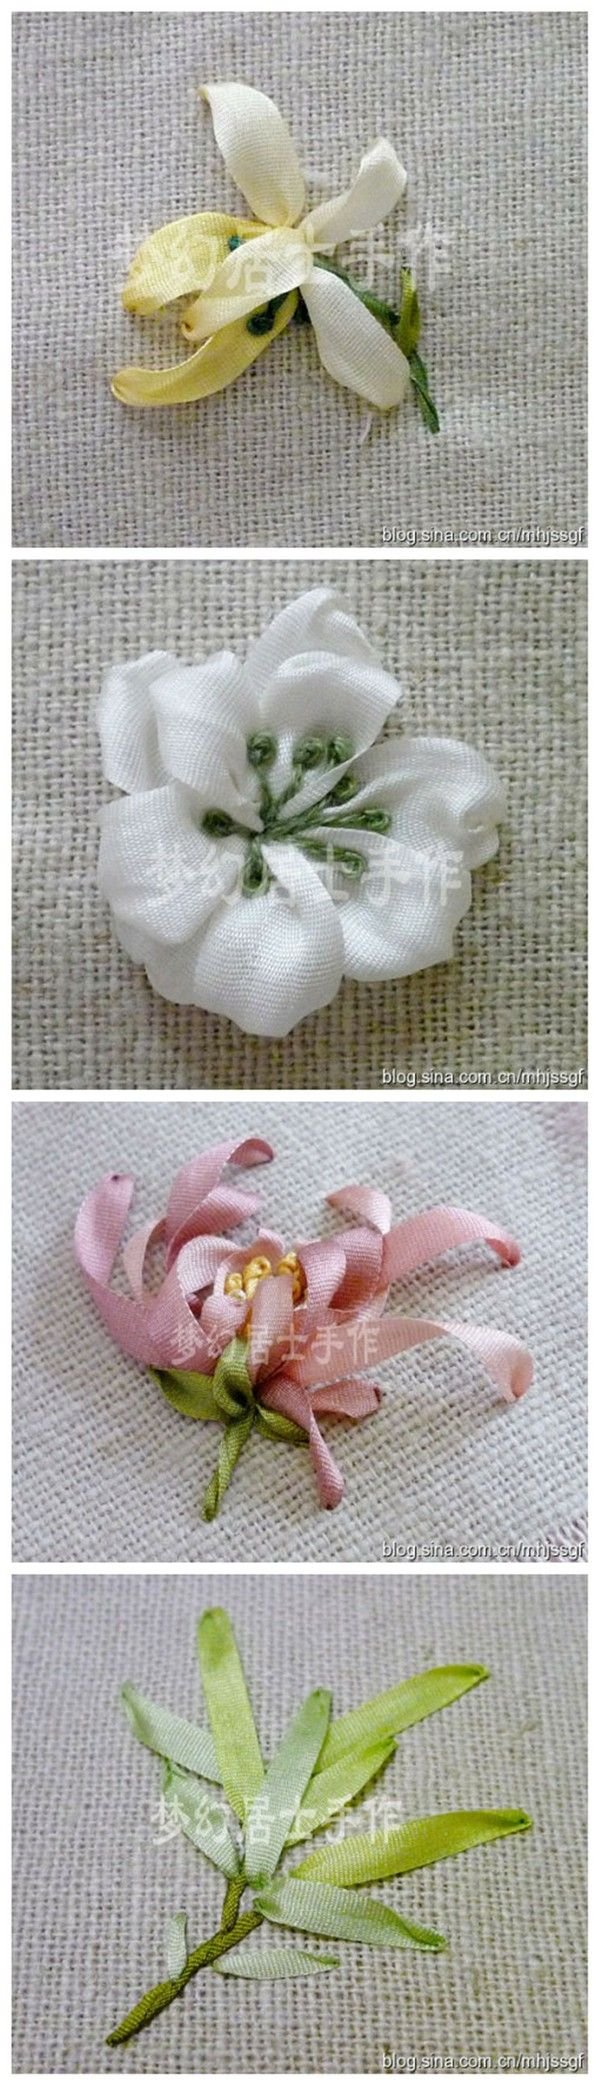 Find This Pin And More On Silk Ribbon Embroidery